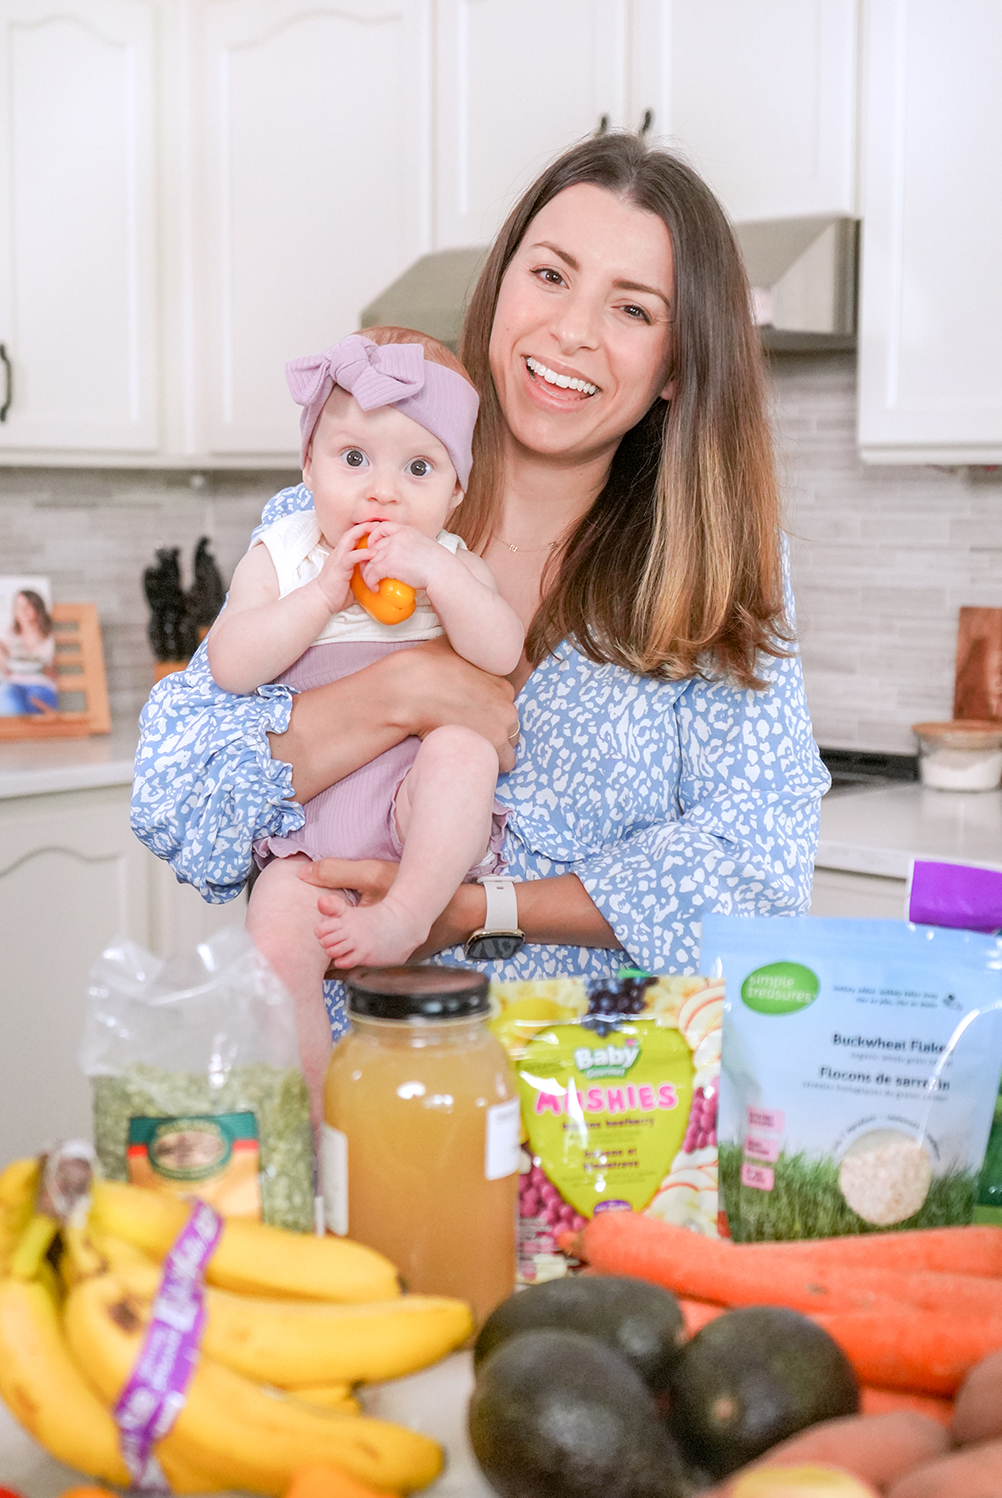 Brunette woman holding her 7 month old baby and showing off baby led weaning foods in her kitchen